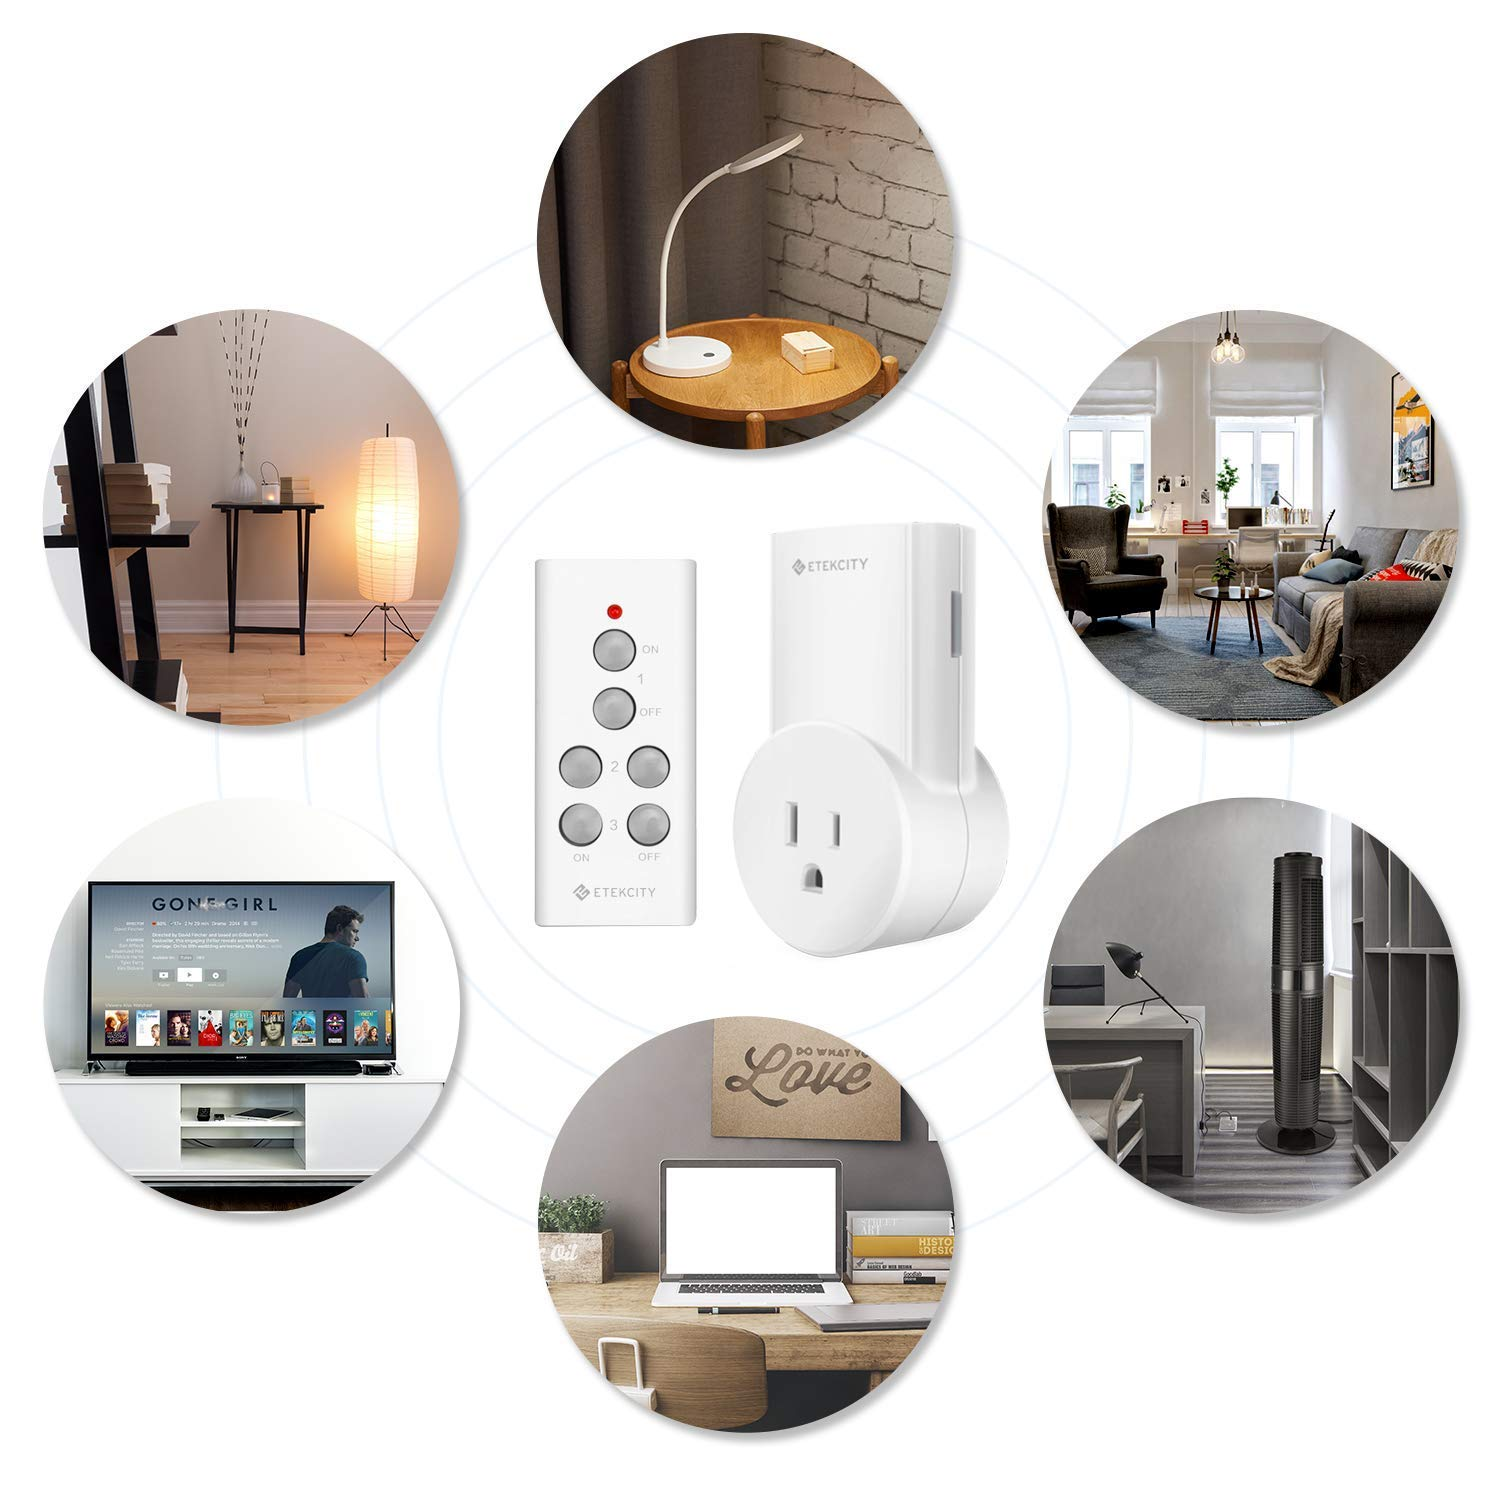 Etekcity Remote Control Outlet Wireless Light Switch For Household Circuit Turn On Off Any Home Appliances Plug And Go Up To 100 Ft Range Fcc Etl Listed White Learning Code